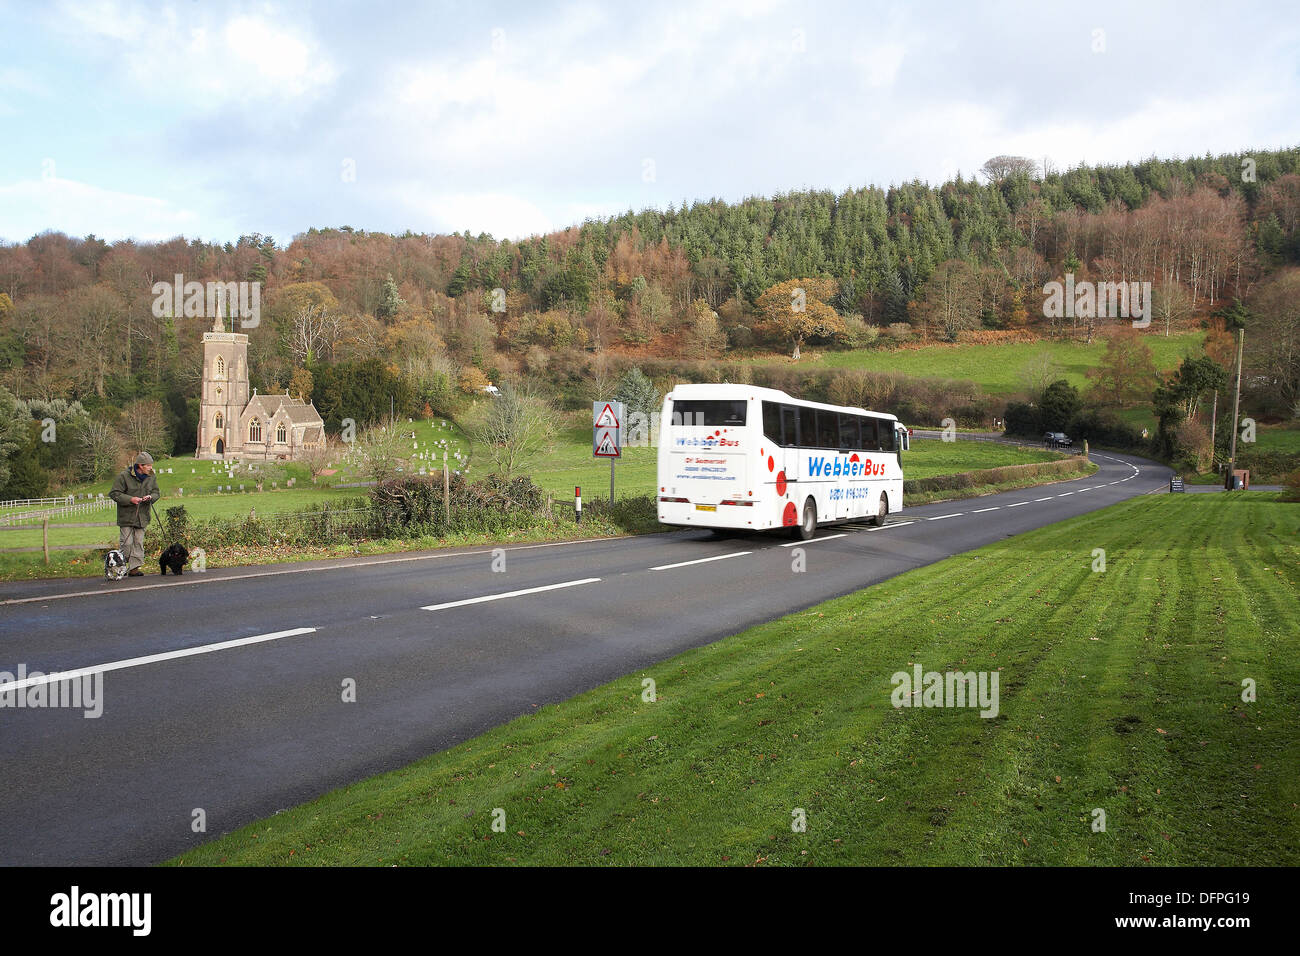 A Webber coach traveling along the A39 at west Quantoxhead, Somerset in England with Saint Etheldreda's Church in the distance. - Stock Image